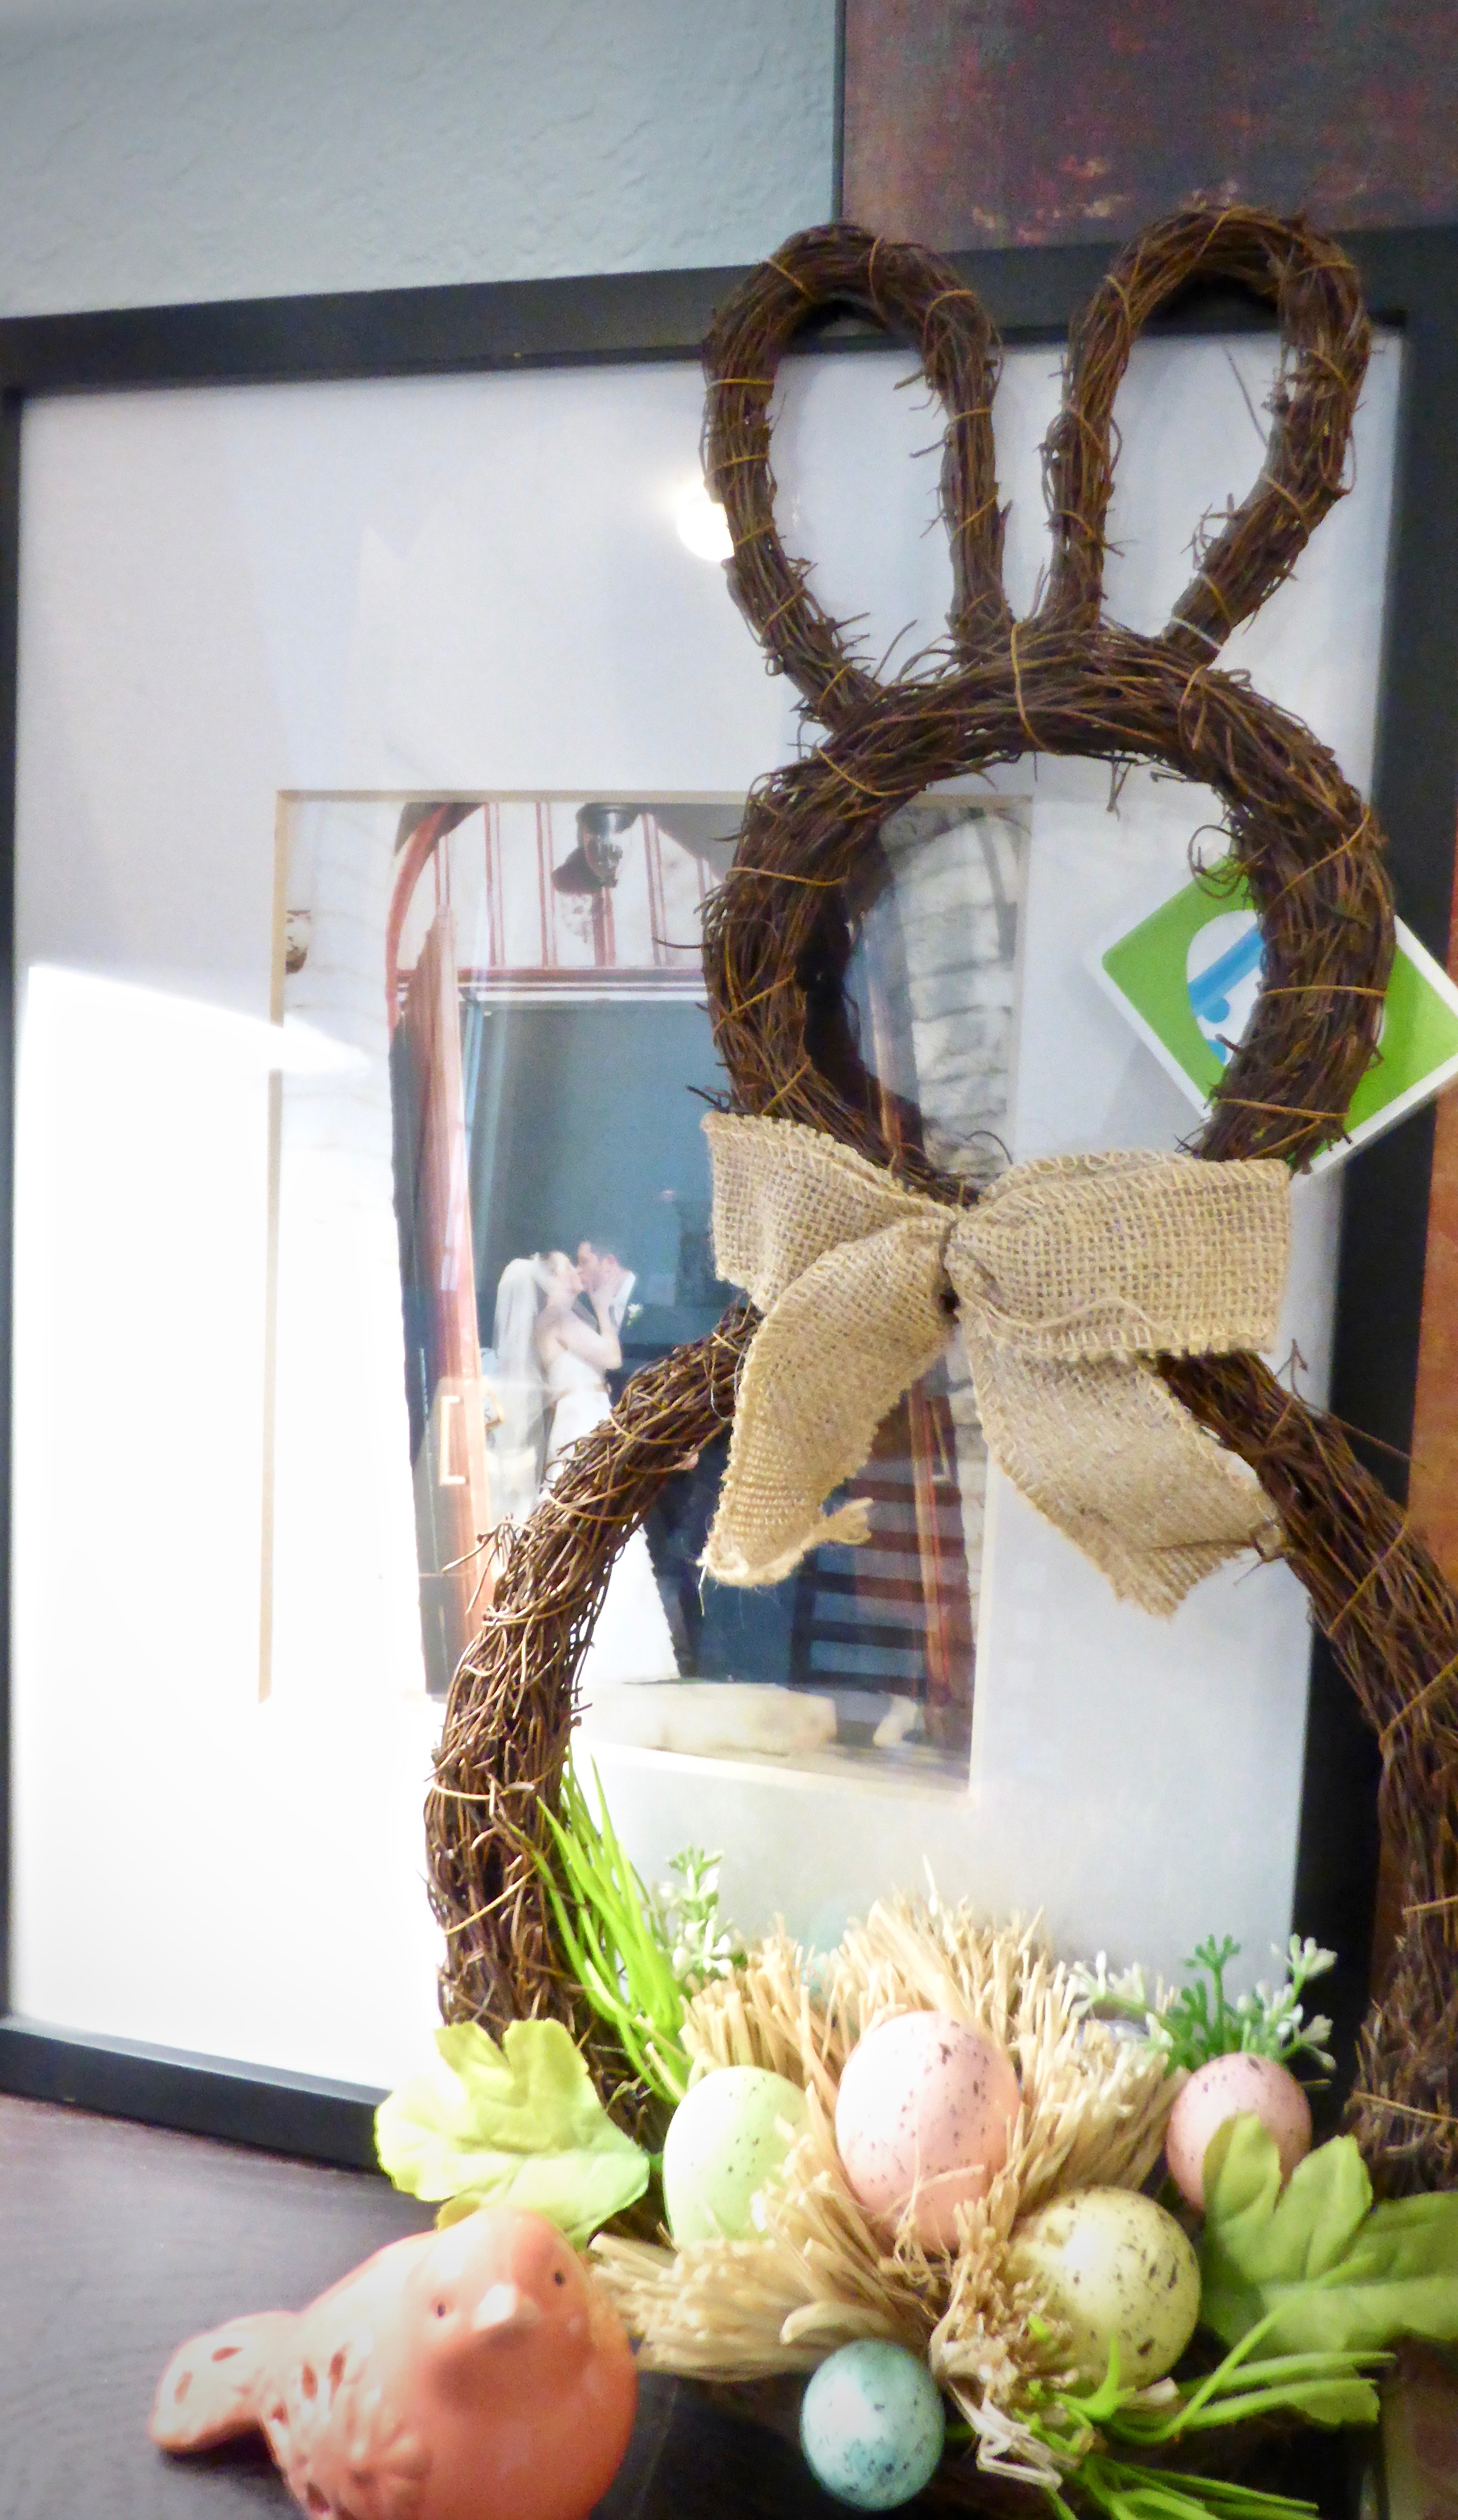 After-Easter clearance home decor - 10 Things To Do With After-Easter Clearance Items